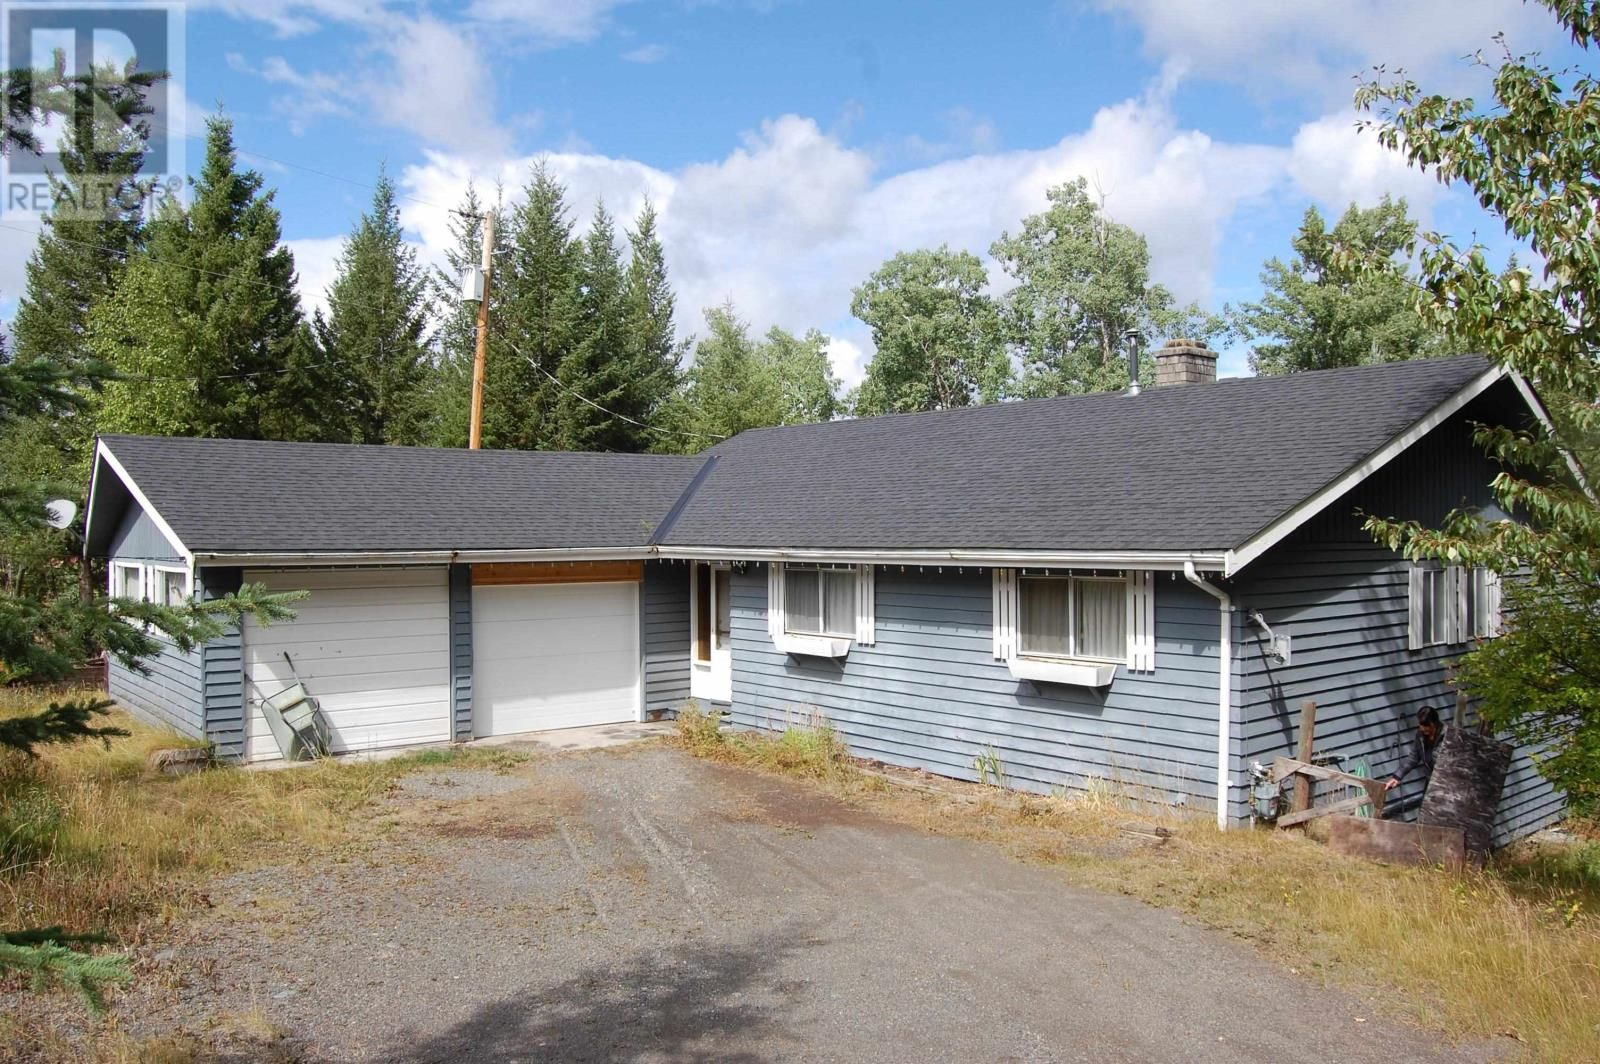 Main Photo: 6275 MULLIGAN DRIVE in Horse Lake: House for sale : MLS®# R2616520